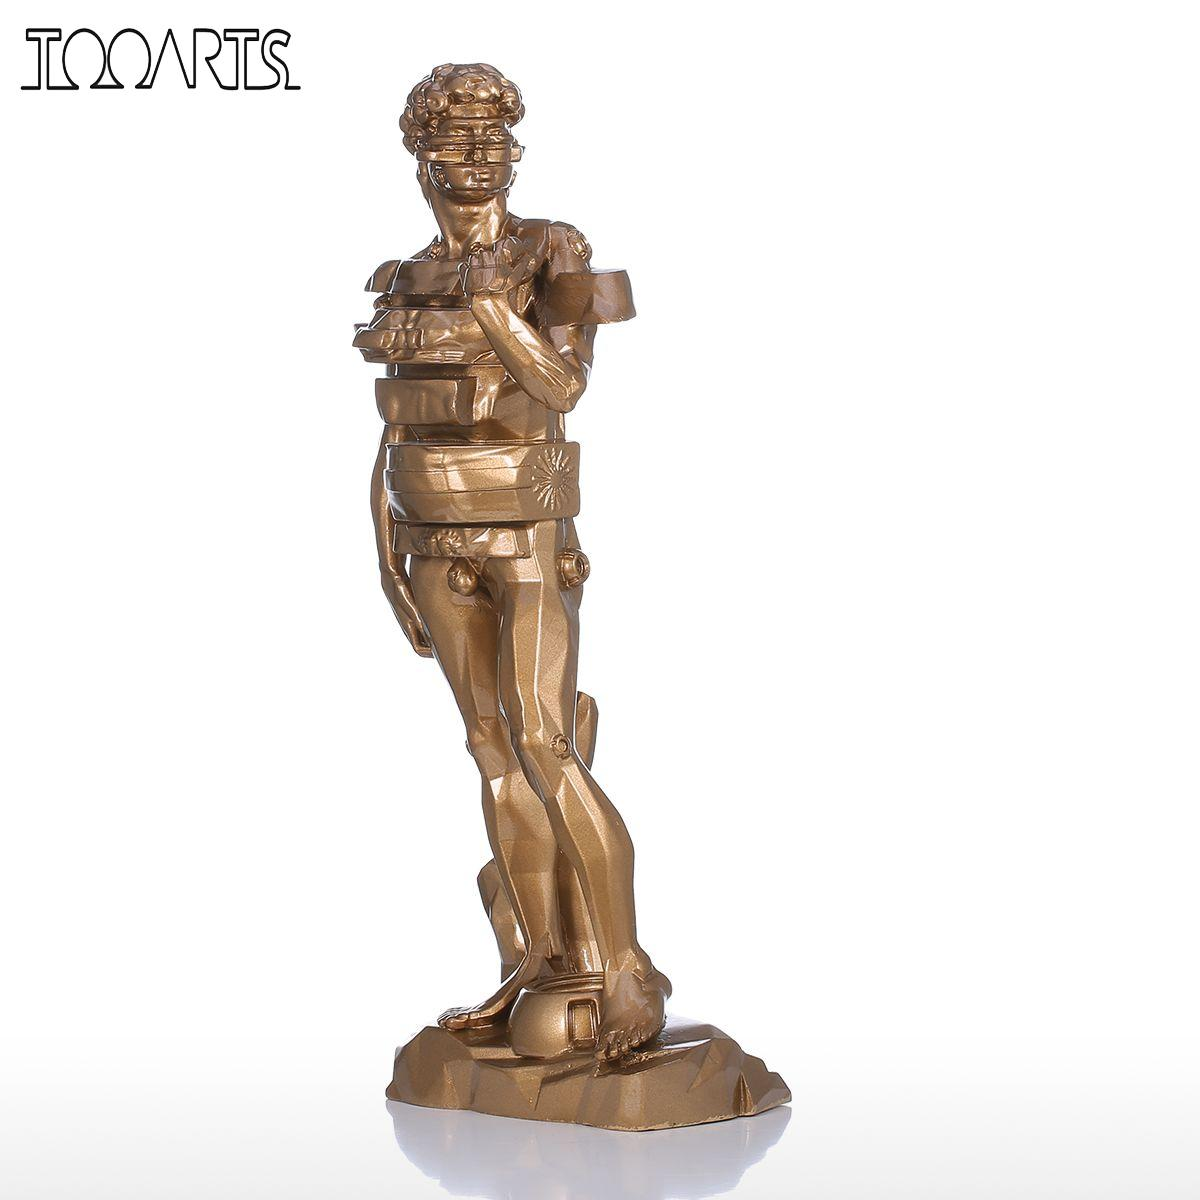 US $63 98 35% OFF Tooarts Sculpture David with Drawer Resin Sculpture Home  Decor Modern Art Figurine Home Ornament-in Statues & Sculptures from Home &